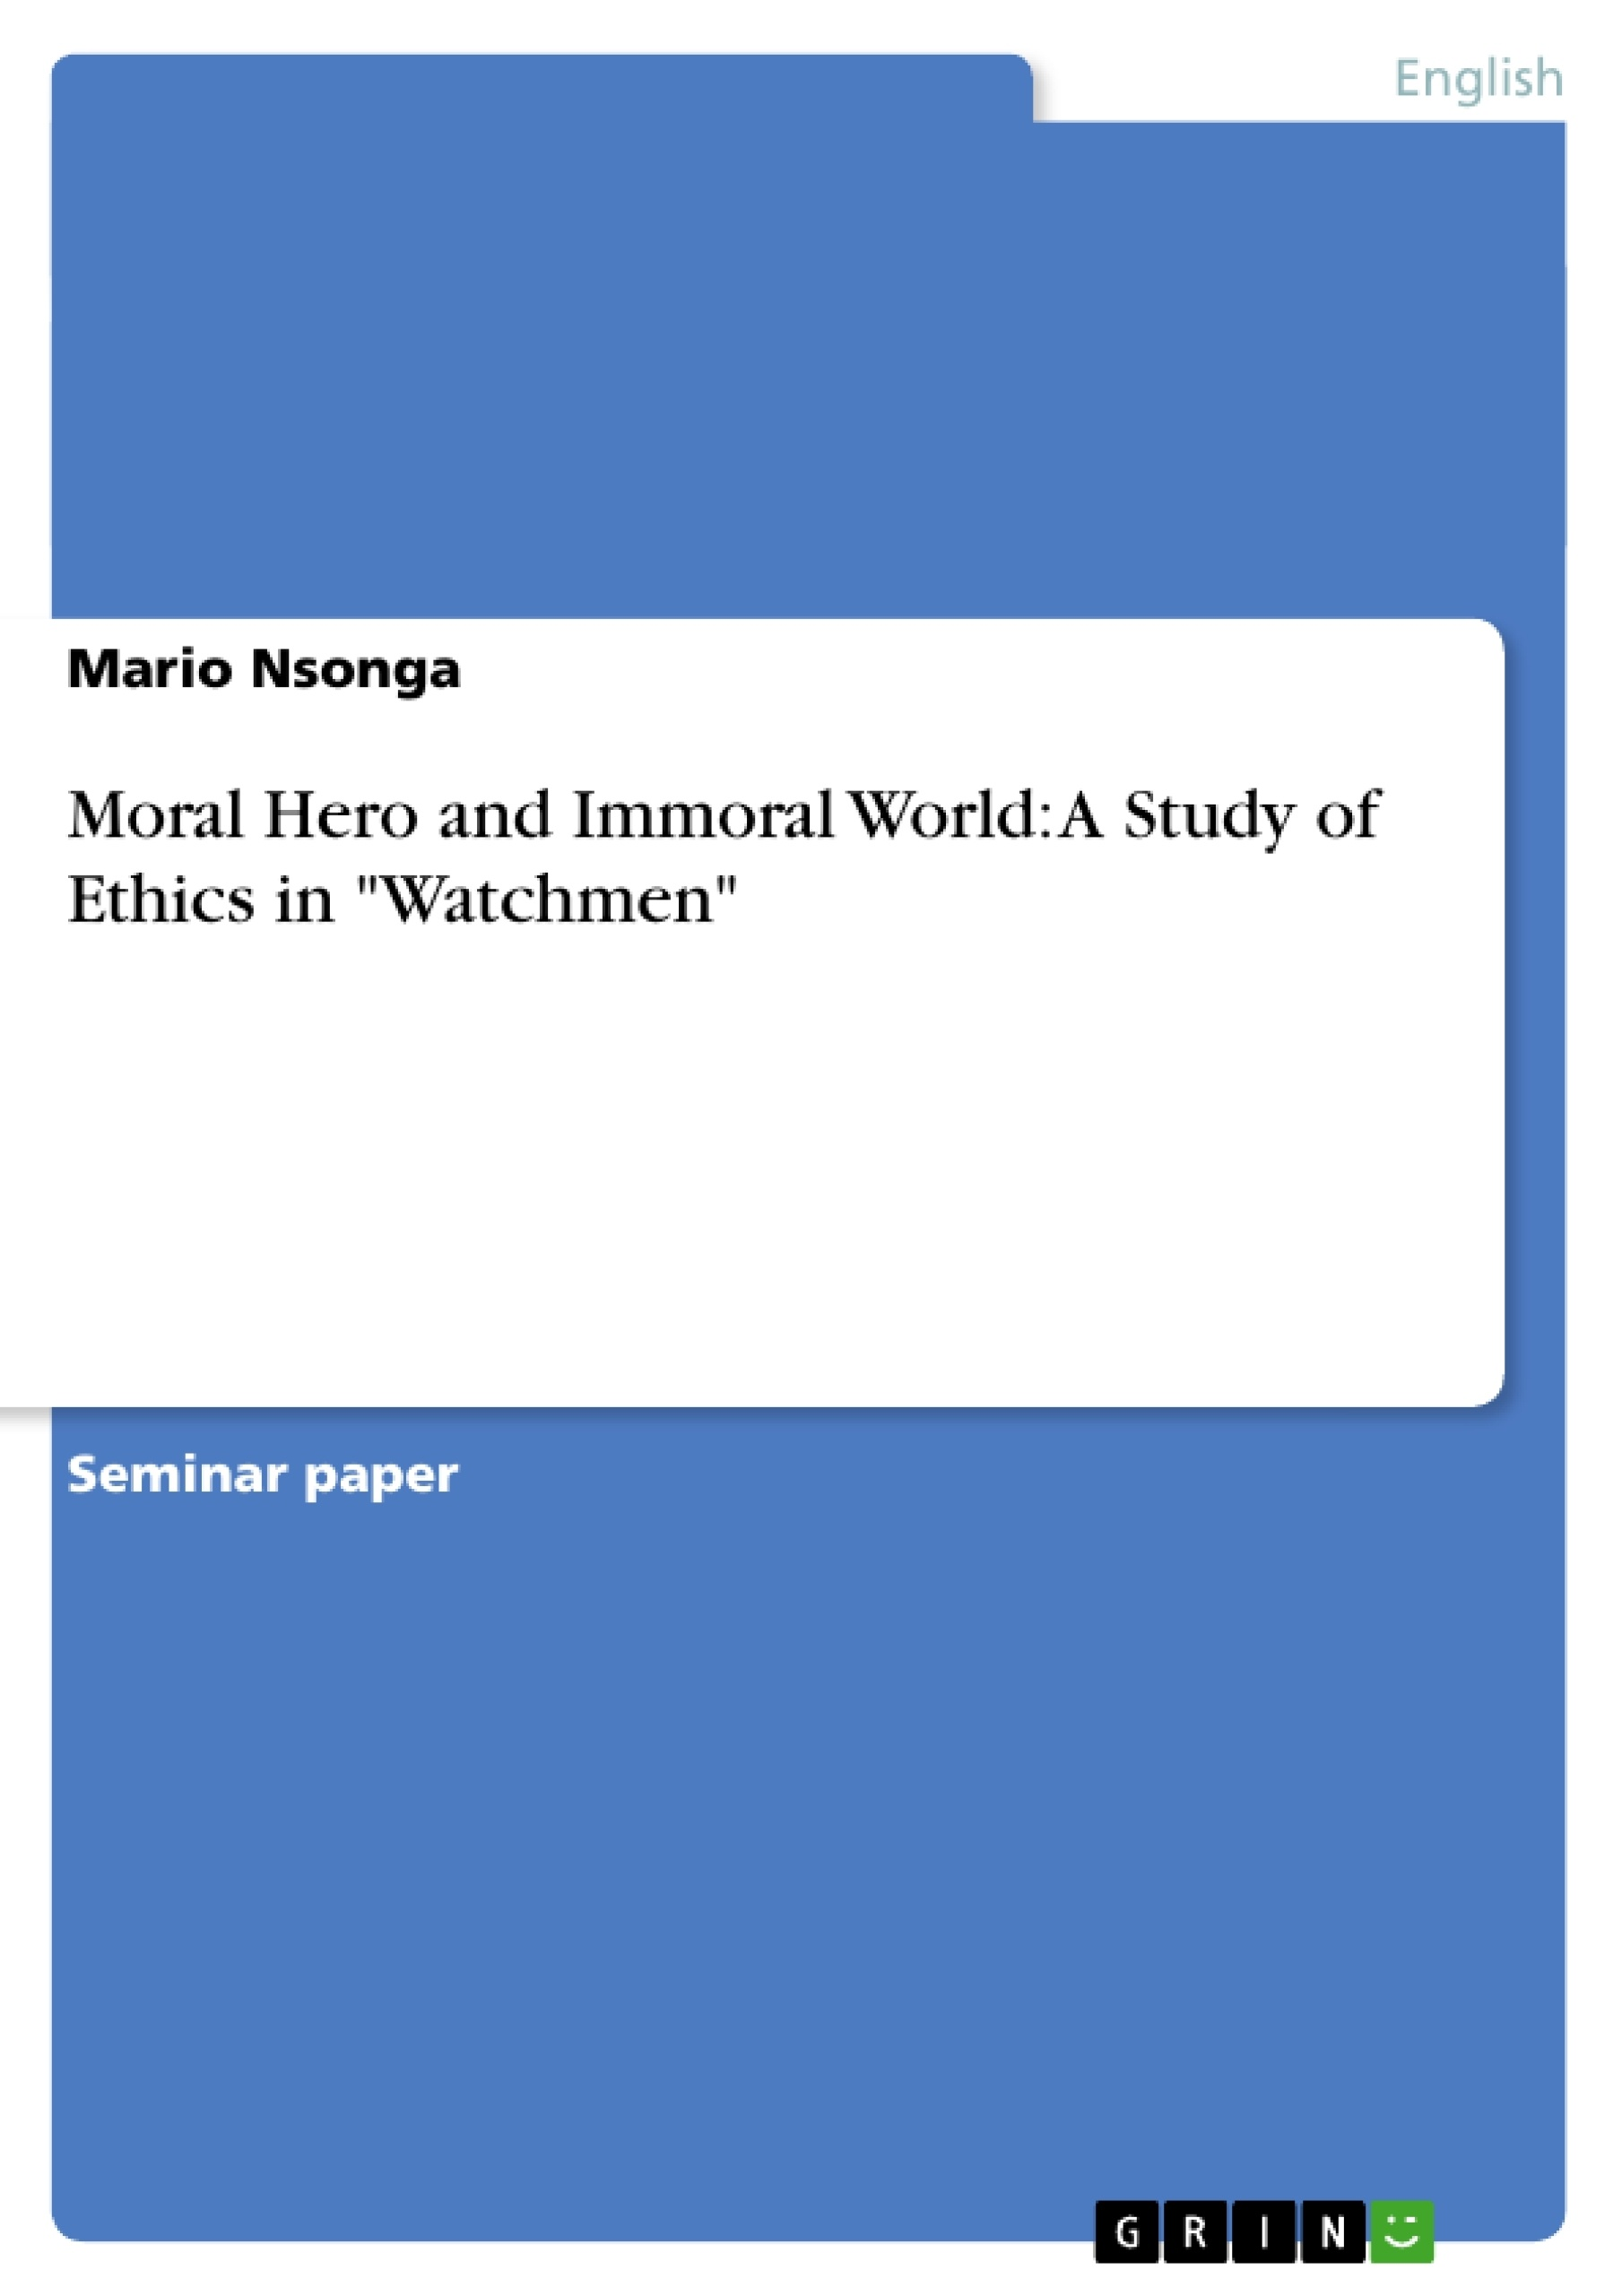 moral hero and immoral world a study of ethics in watchmen  upload your own papers earn money and win an iphone x